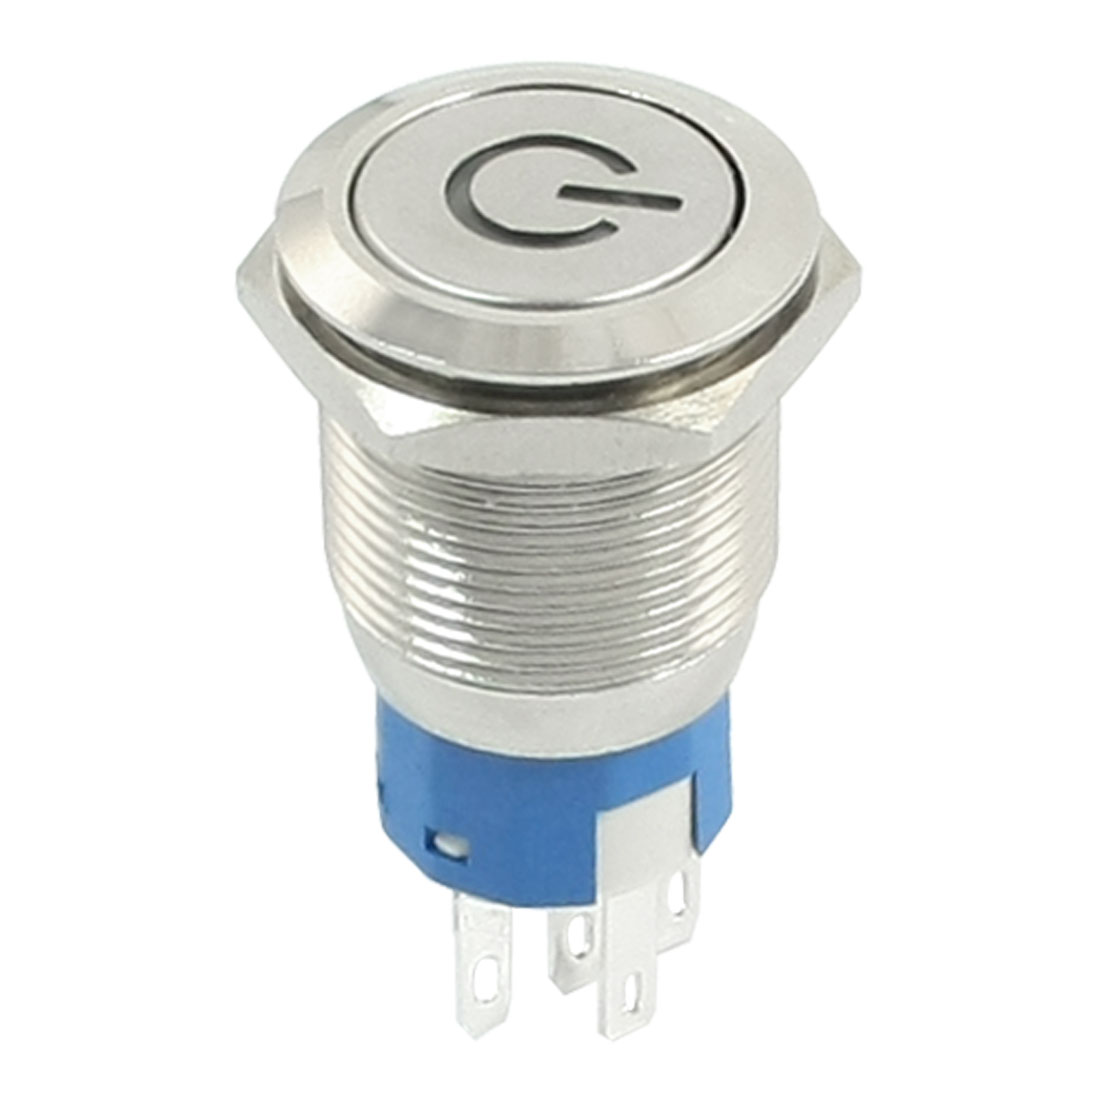 19mm ON/OFF Blue LED DC12V 3A Locking Power Push Button Stainless Steel Switch AC 250V 5A